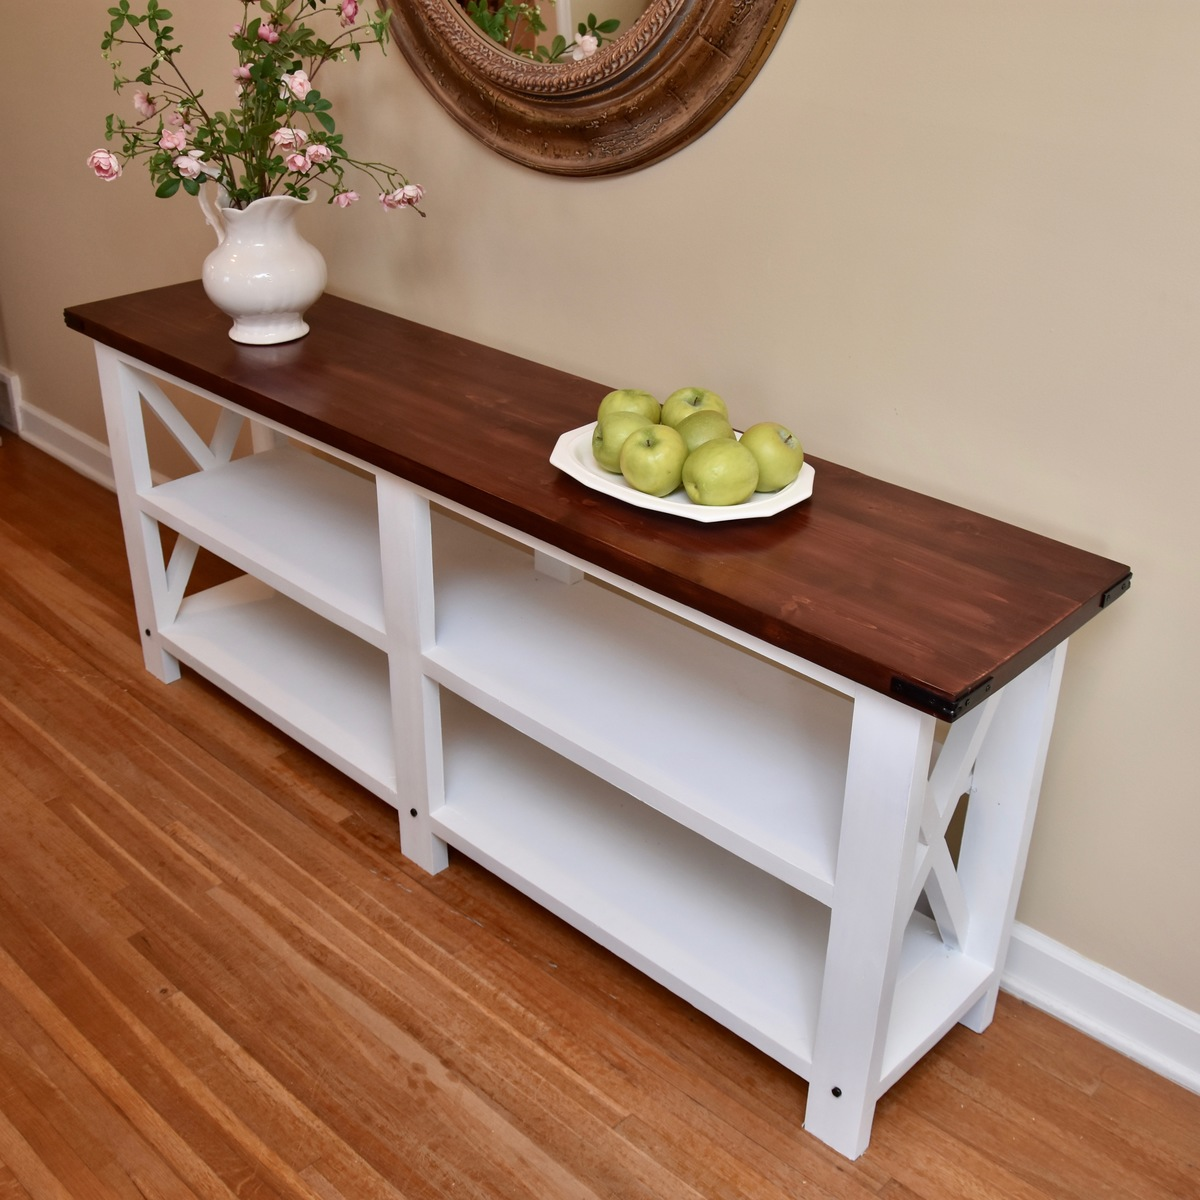 Farmhouse Console Table Ana White